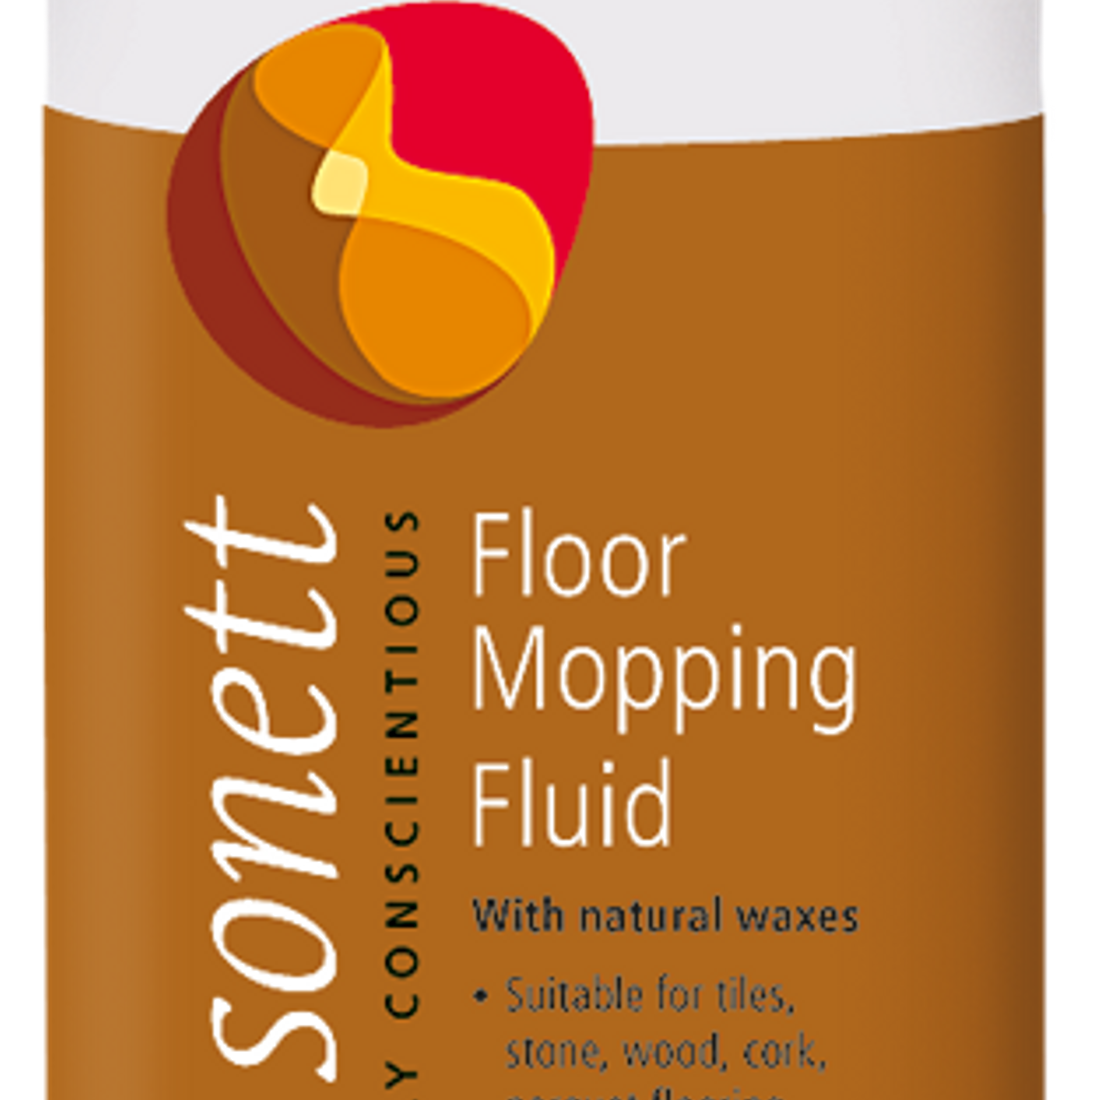 Sonett Eco Floor Mopping Fluid 17 fl oz / 500 ml